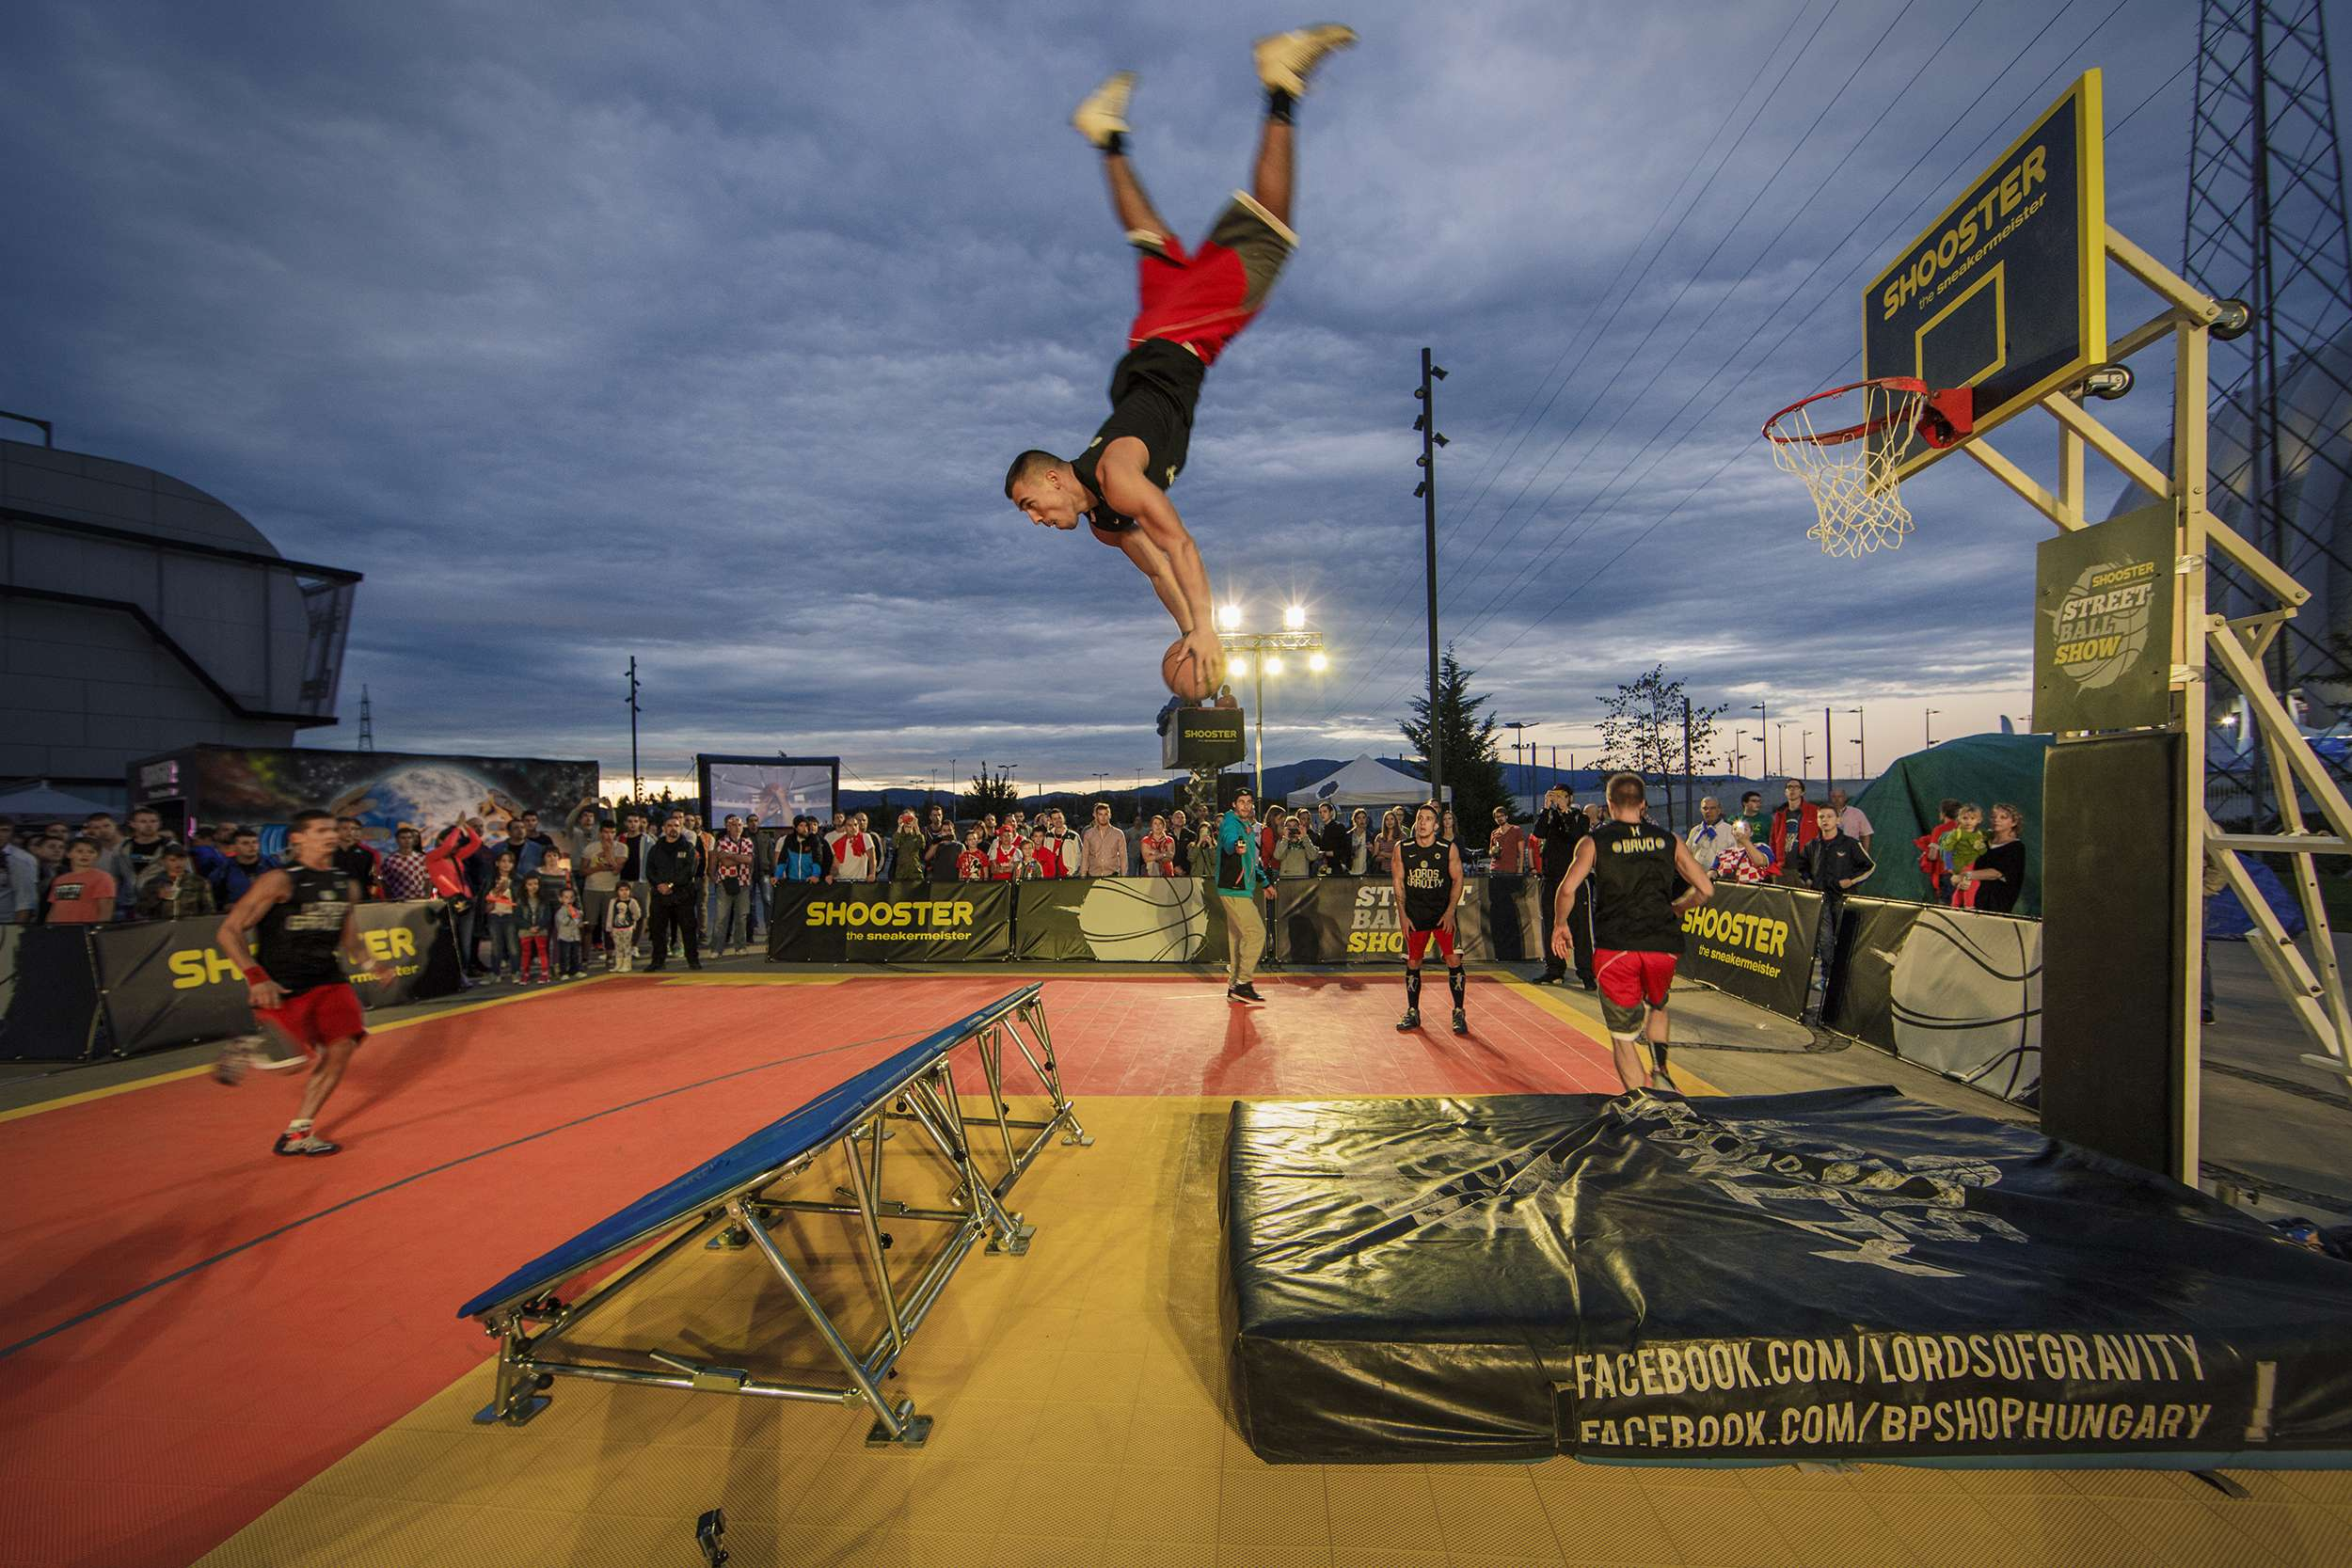 Shooster StreetBall Show